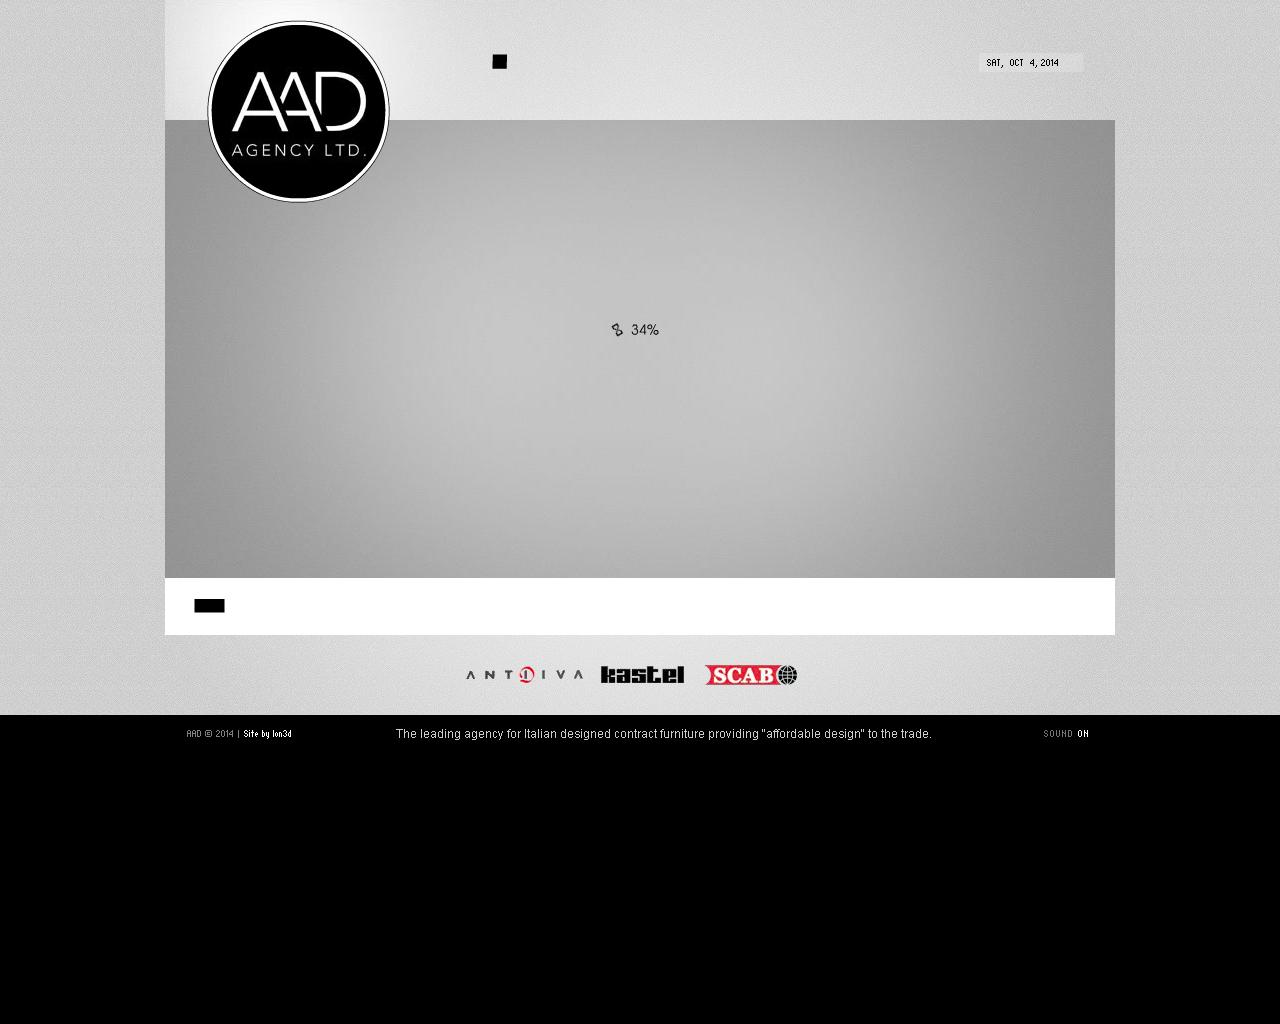 Screenshot of aadagency.com - AAD Agency - Brand management for the design industry. Furniture . Fashion . Interiors - captured Oct. 4, 2014